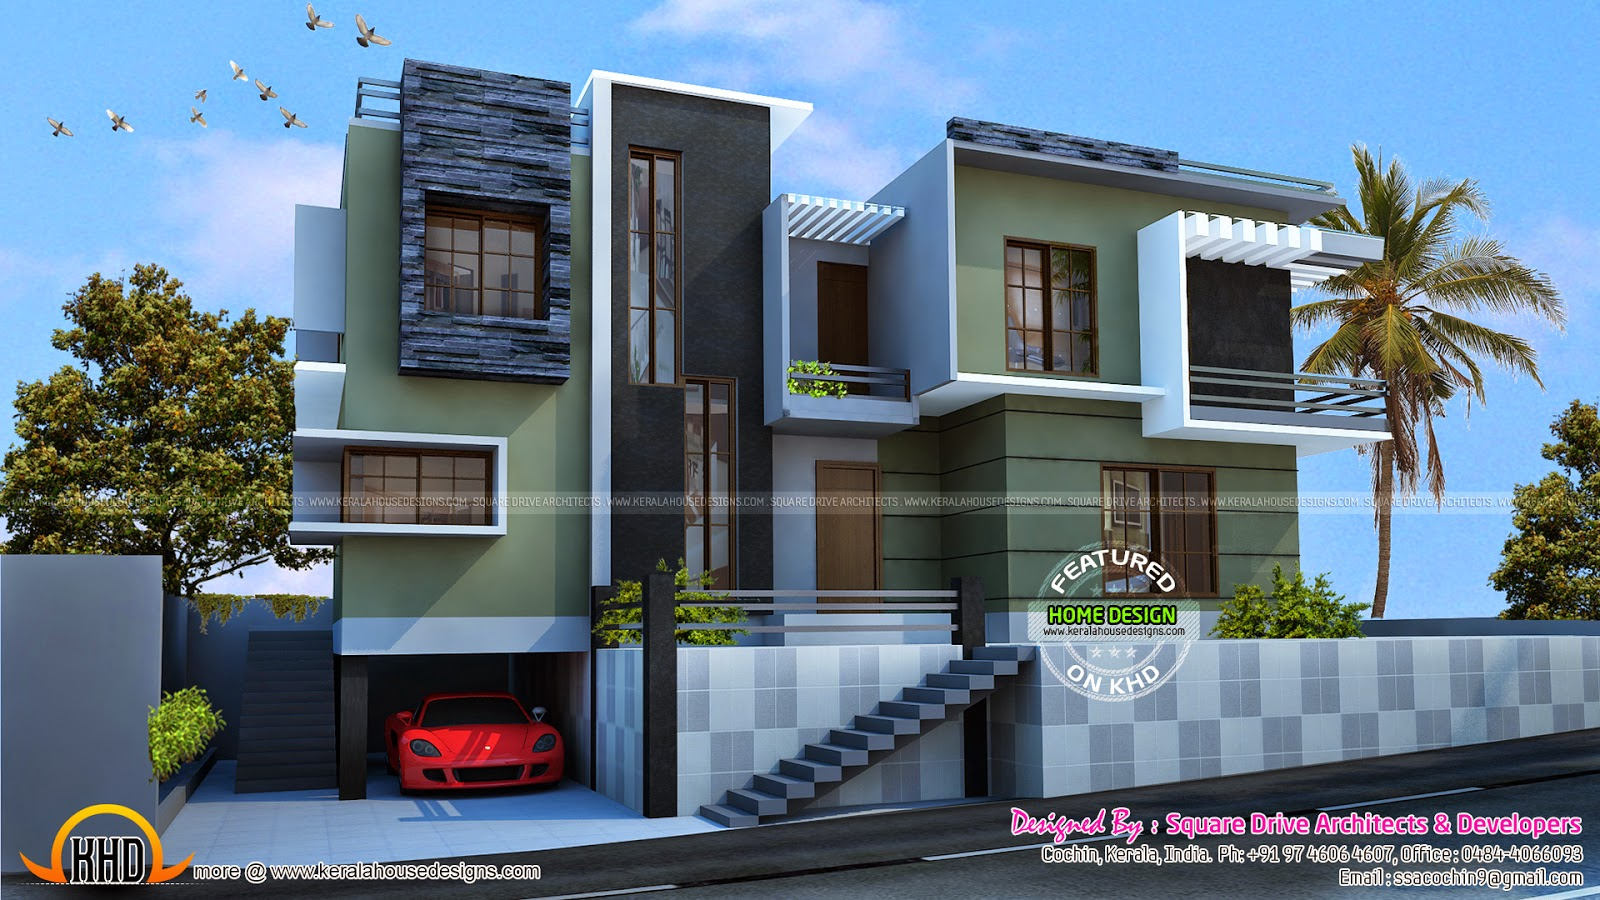 House plans and design modern house plans duplex for Modern house plans 2015